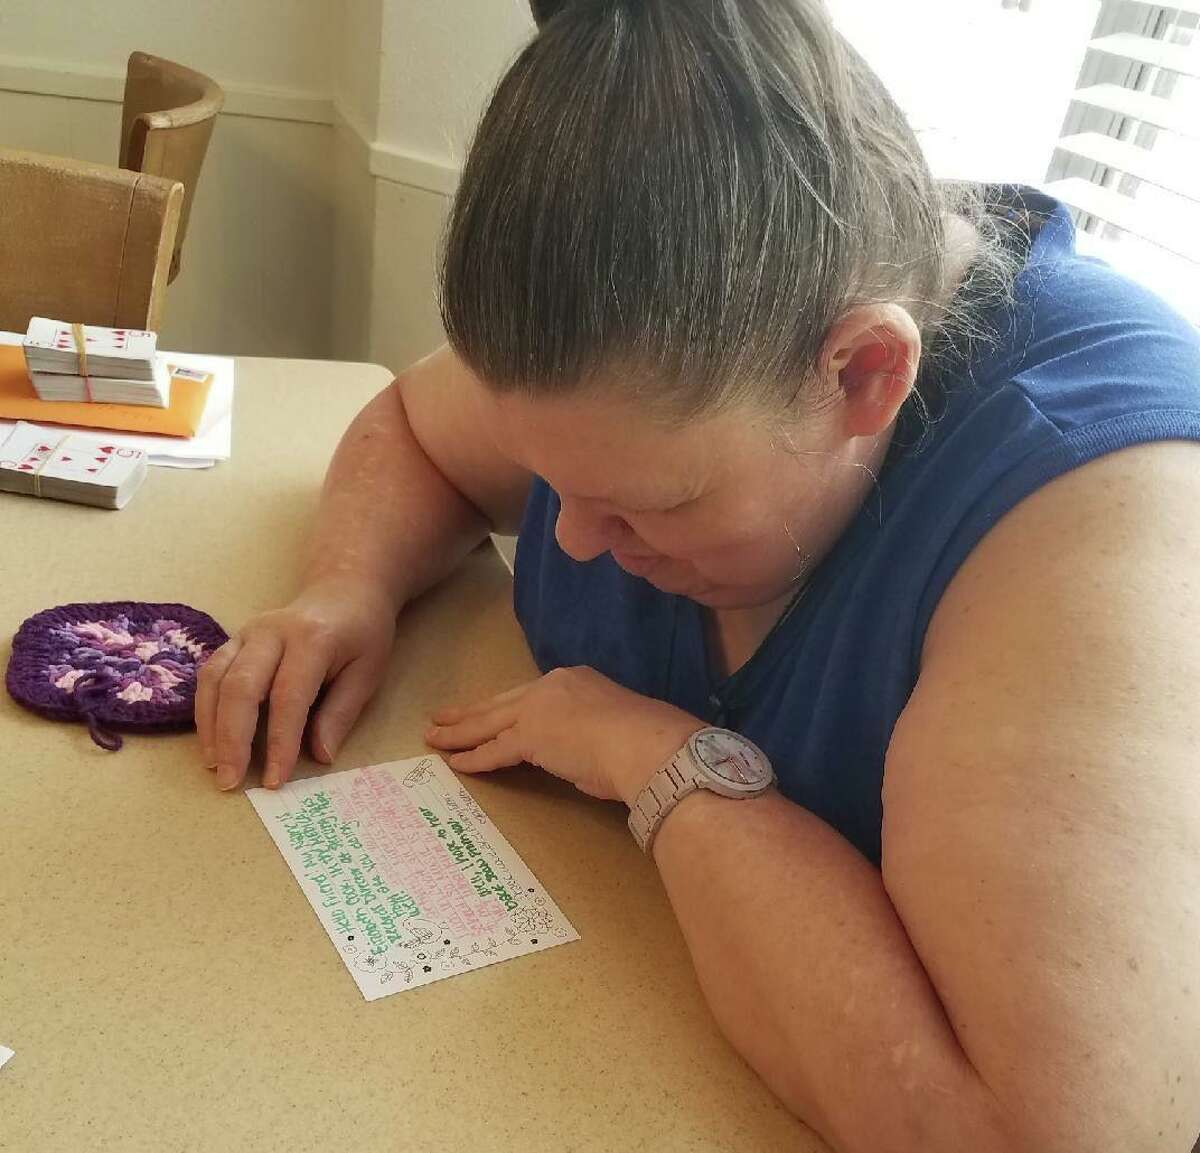 Vita Living resident Cheryl checks out her handwritten letter and crocheted piece sent from a Sterling Oaks Rehabilitation resident. The pen pal exchange began in May and has provided friendship amid the isolation of the pandemic.